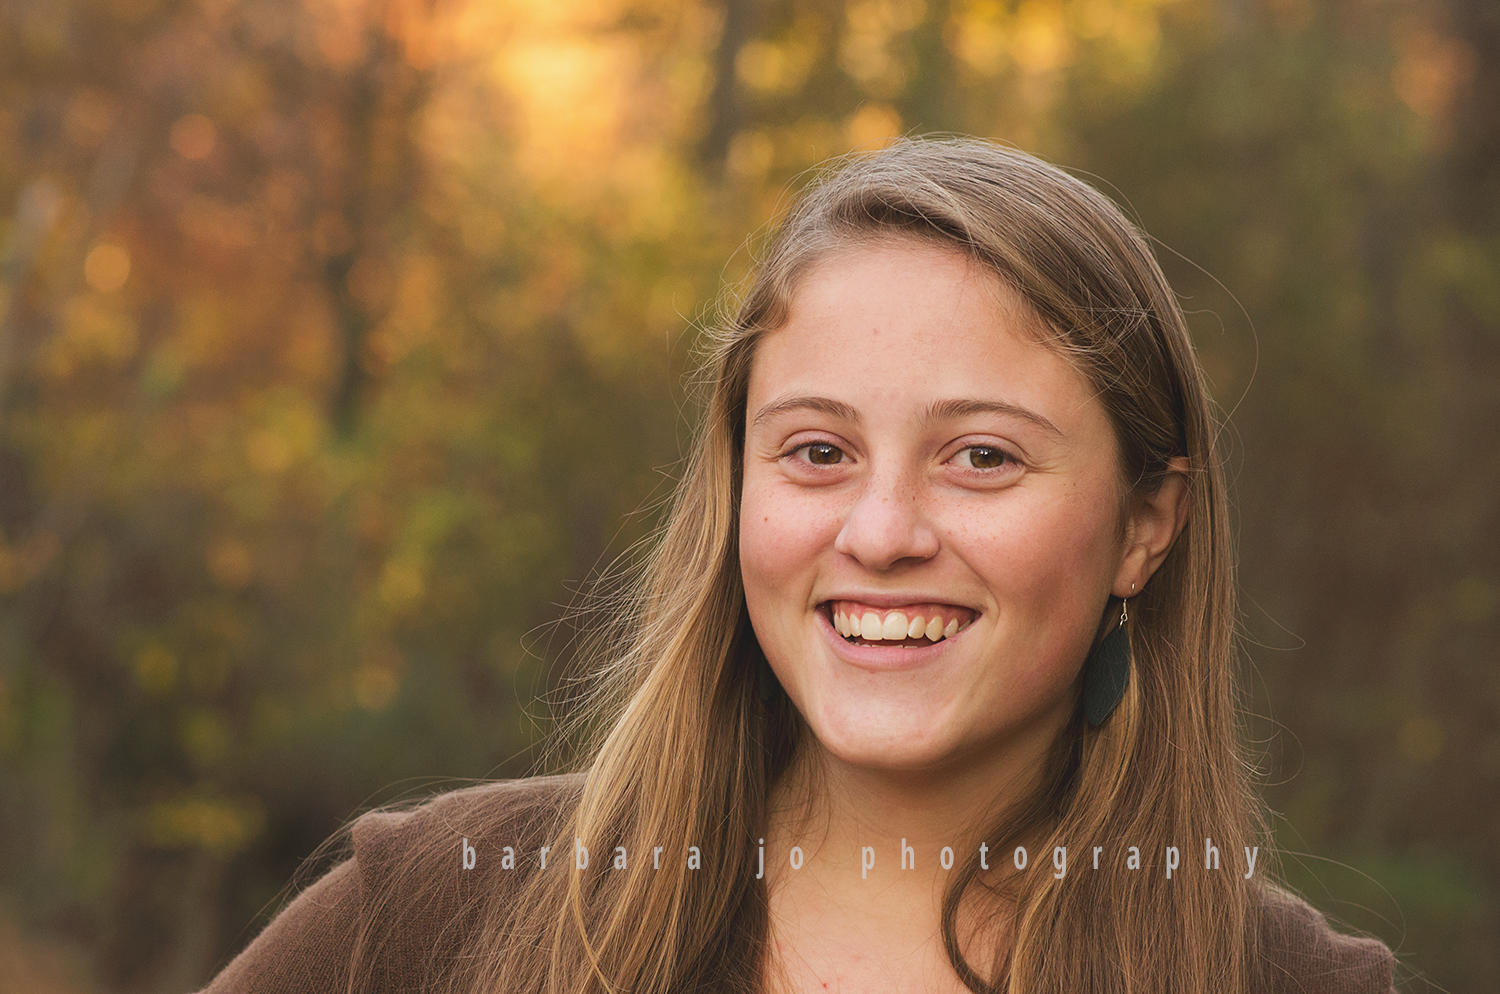 bjp-senior-pictures-portraits-class-of-2018-dover-oh-fall-autumn-woods-graduate-abby9.png